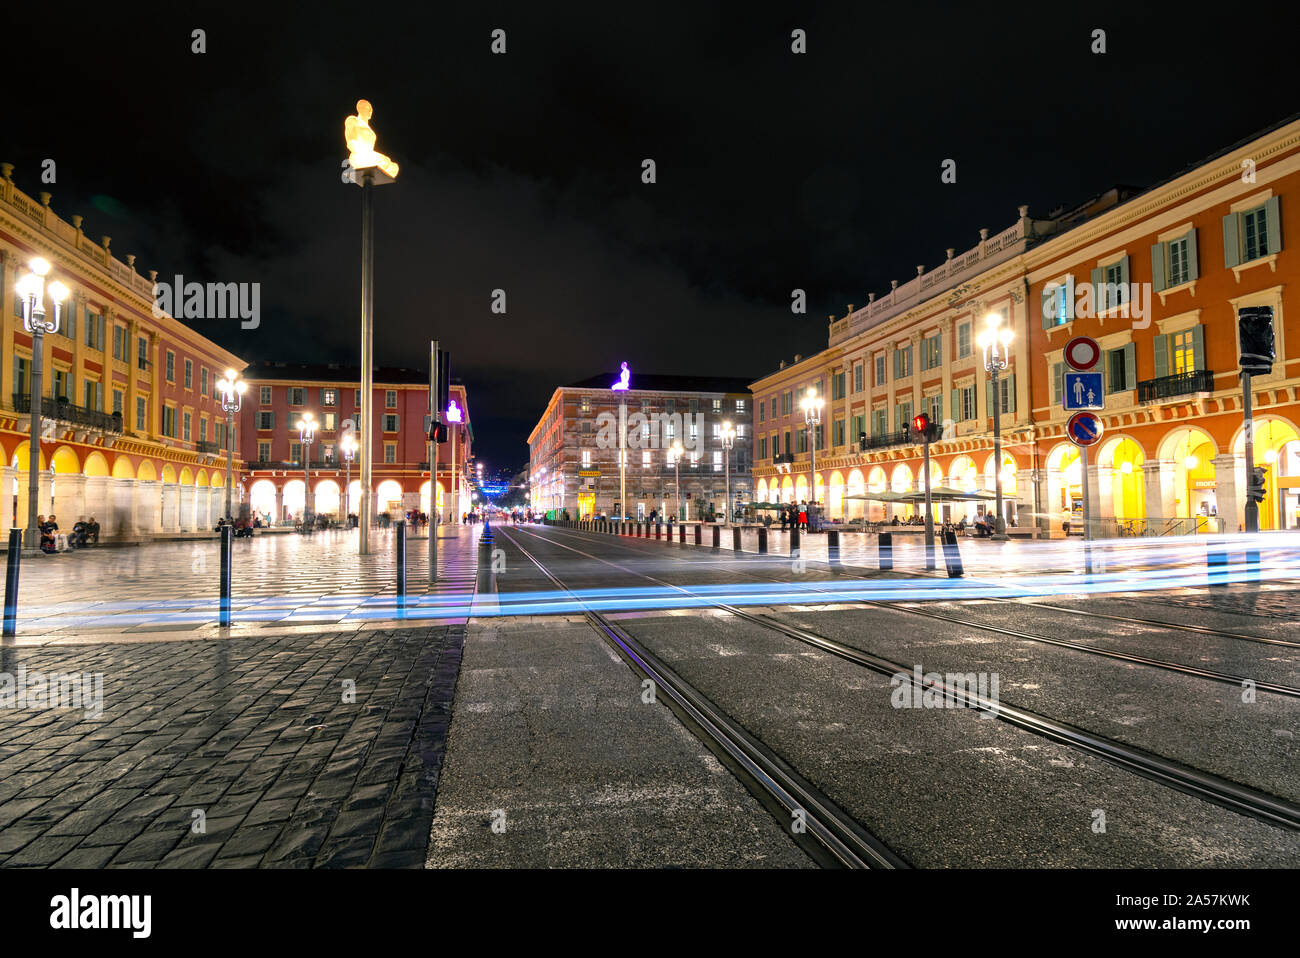 Car headlights make light trail from long exposure as the cross tram tracks late at night in Place Massena in the historic city of Nice, France. Stock Photo